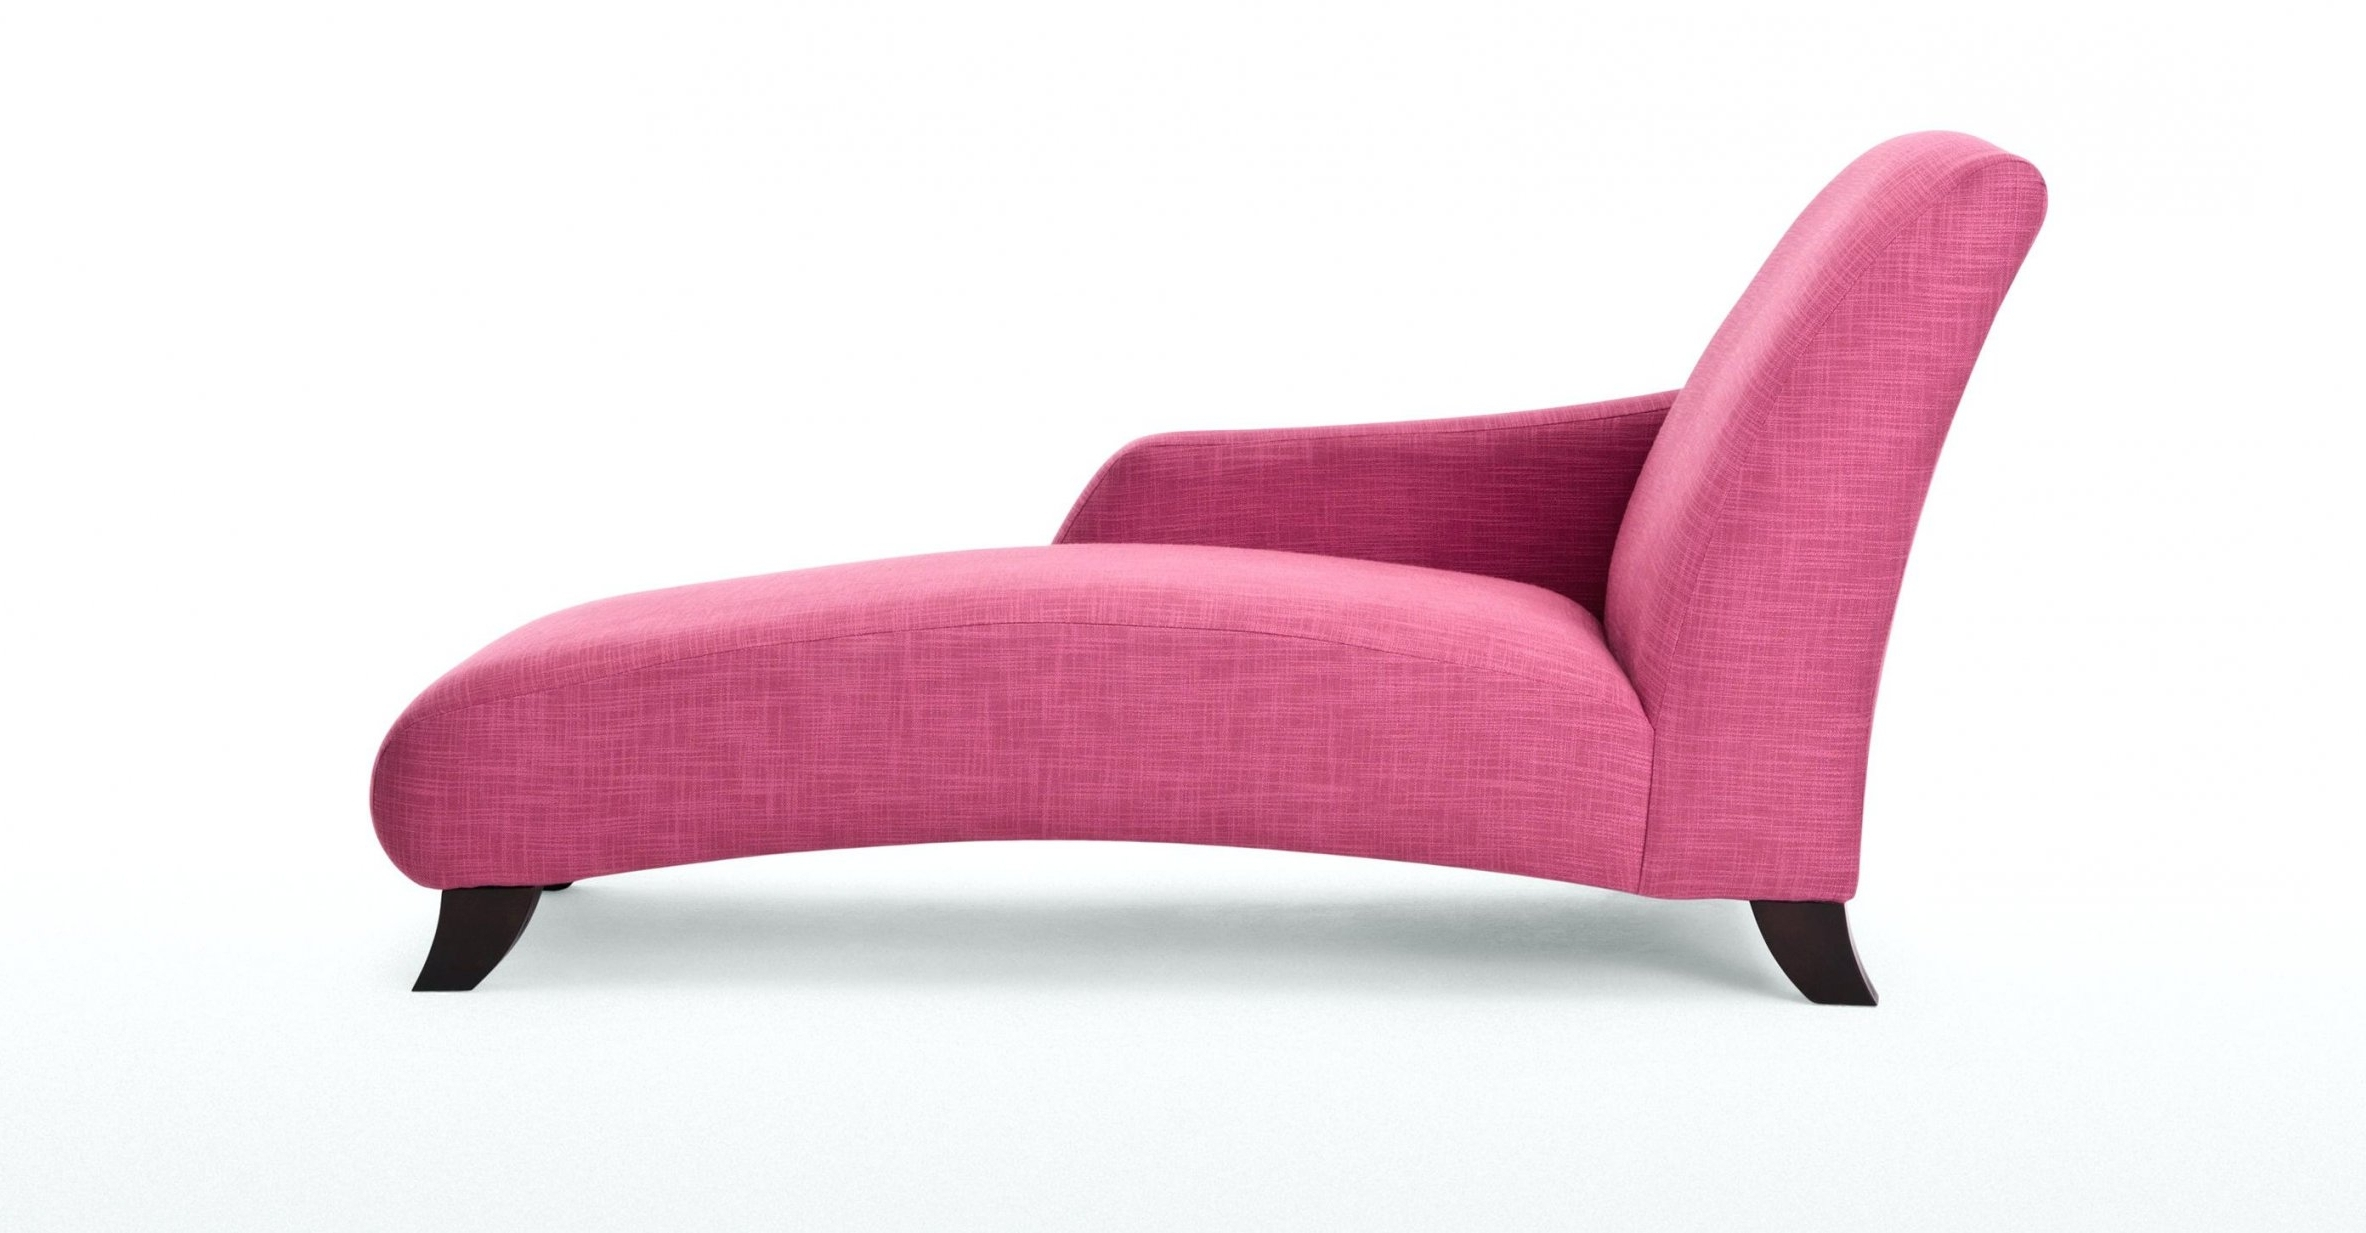 Famous Pink Chaise Lounge Sofa Inside Pink Chaise Lounges (View 2 of 15)